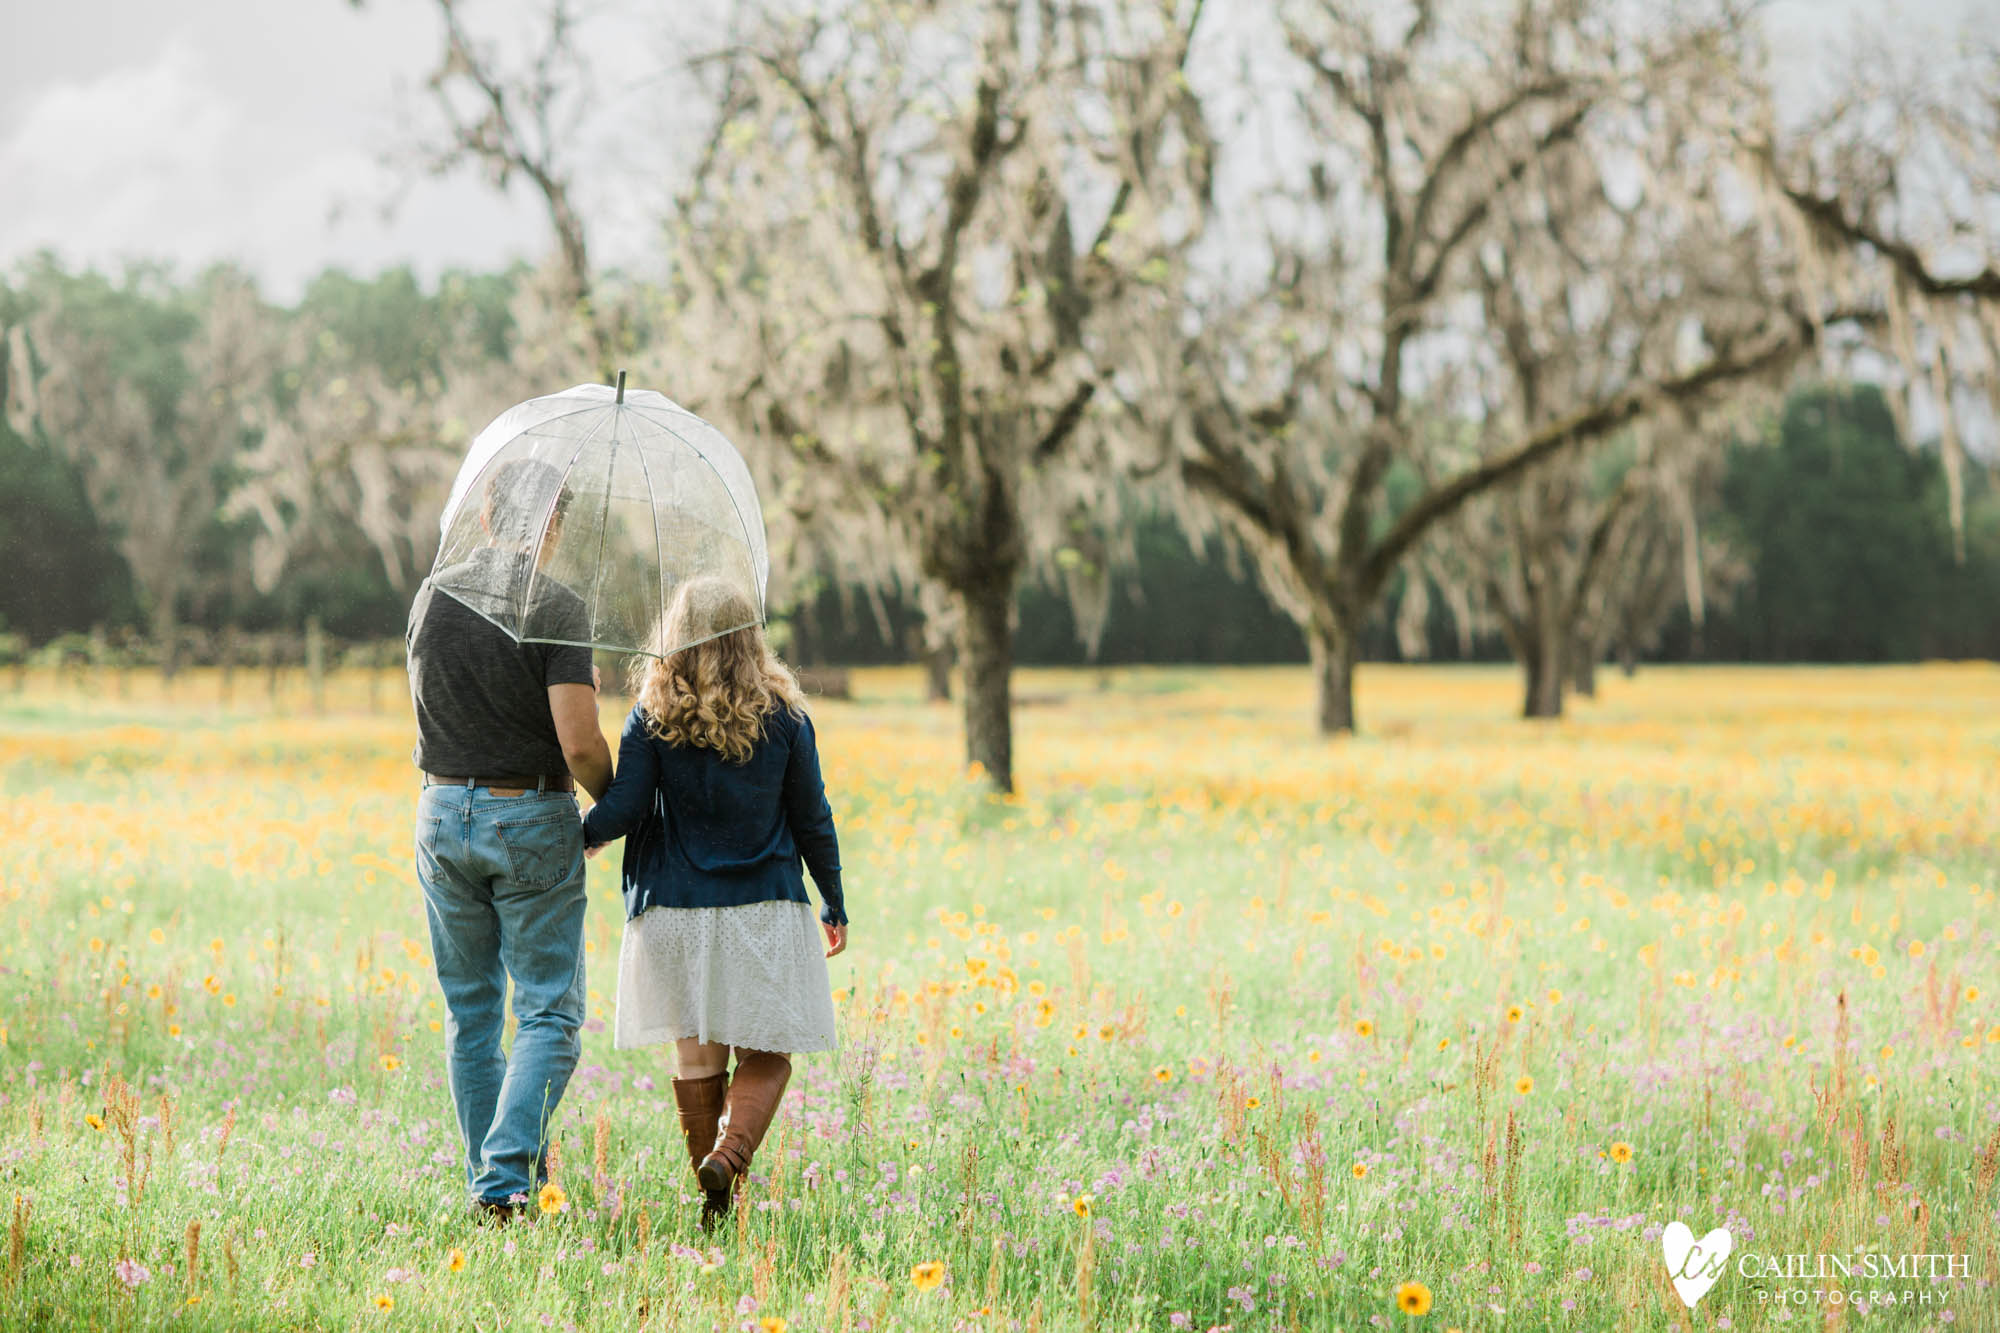 Christie_Nathan_Flower_Field_engagement_Photography_001.jpg